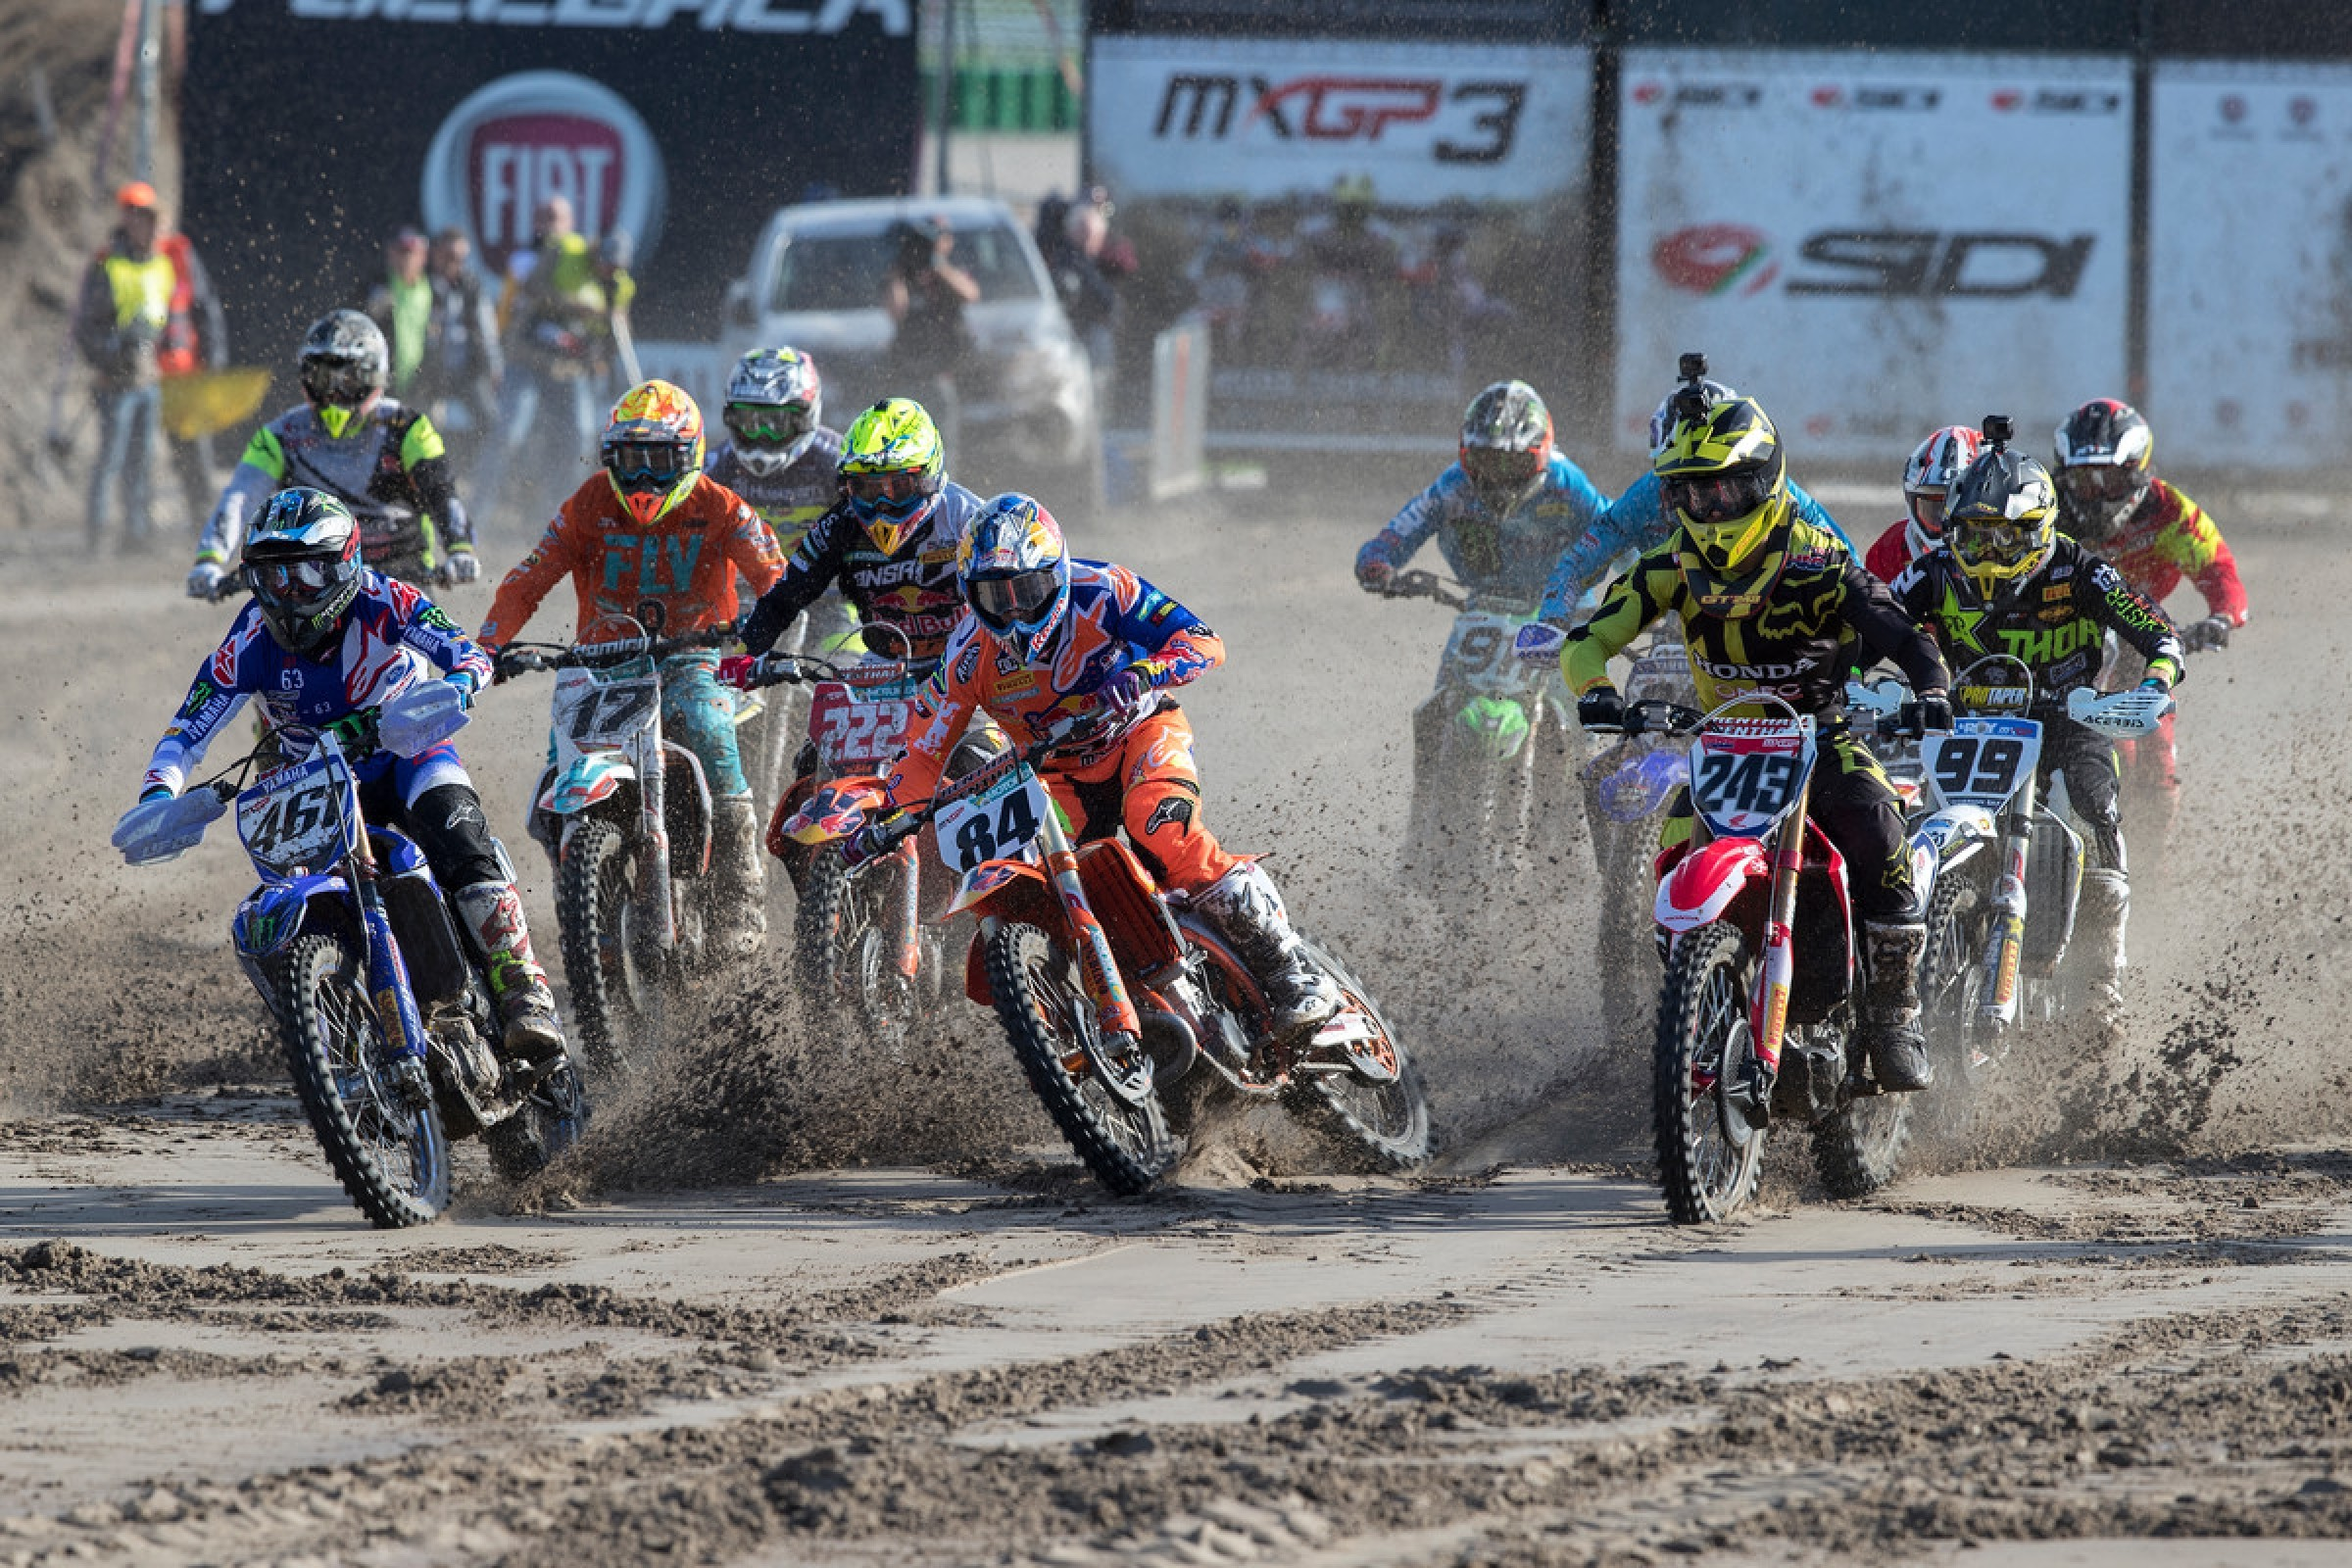 GP Report: MXGP of The Netherlands